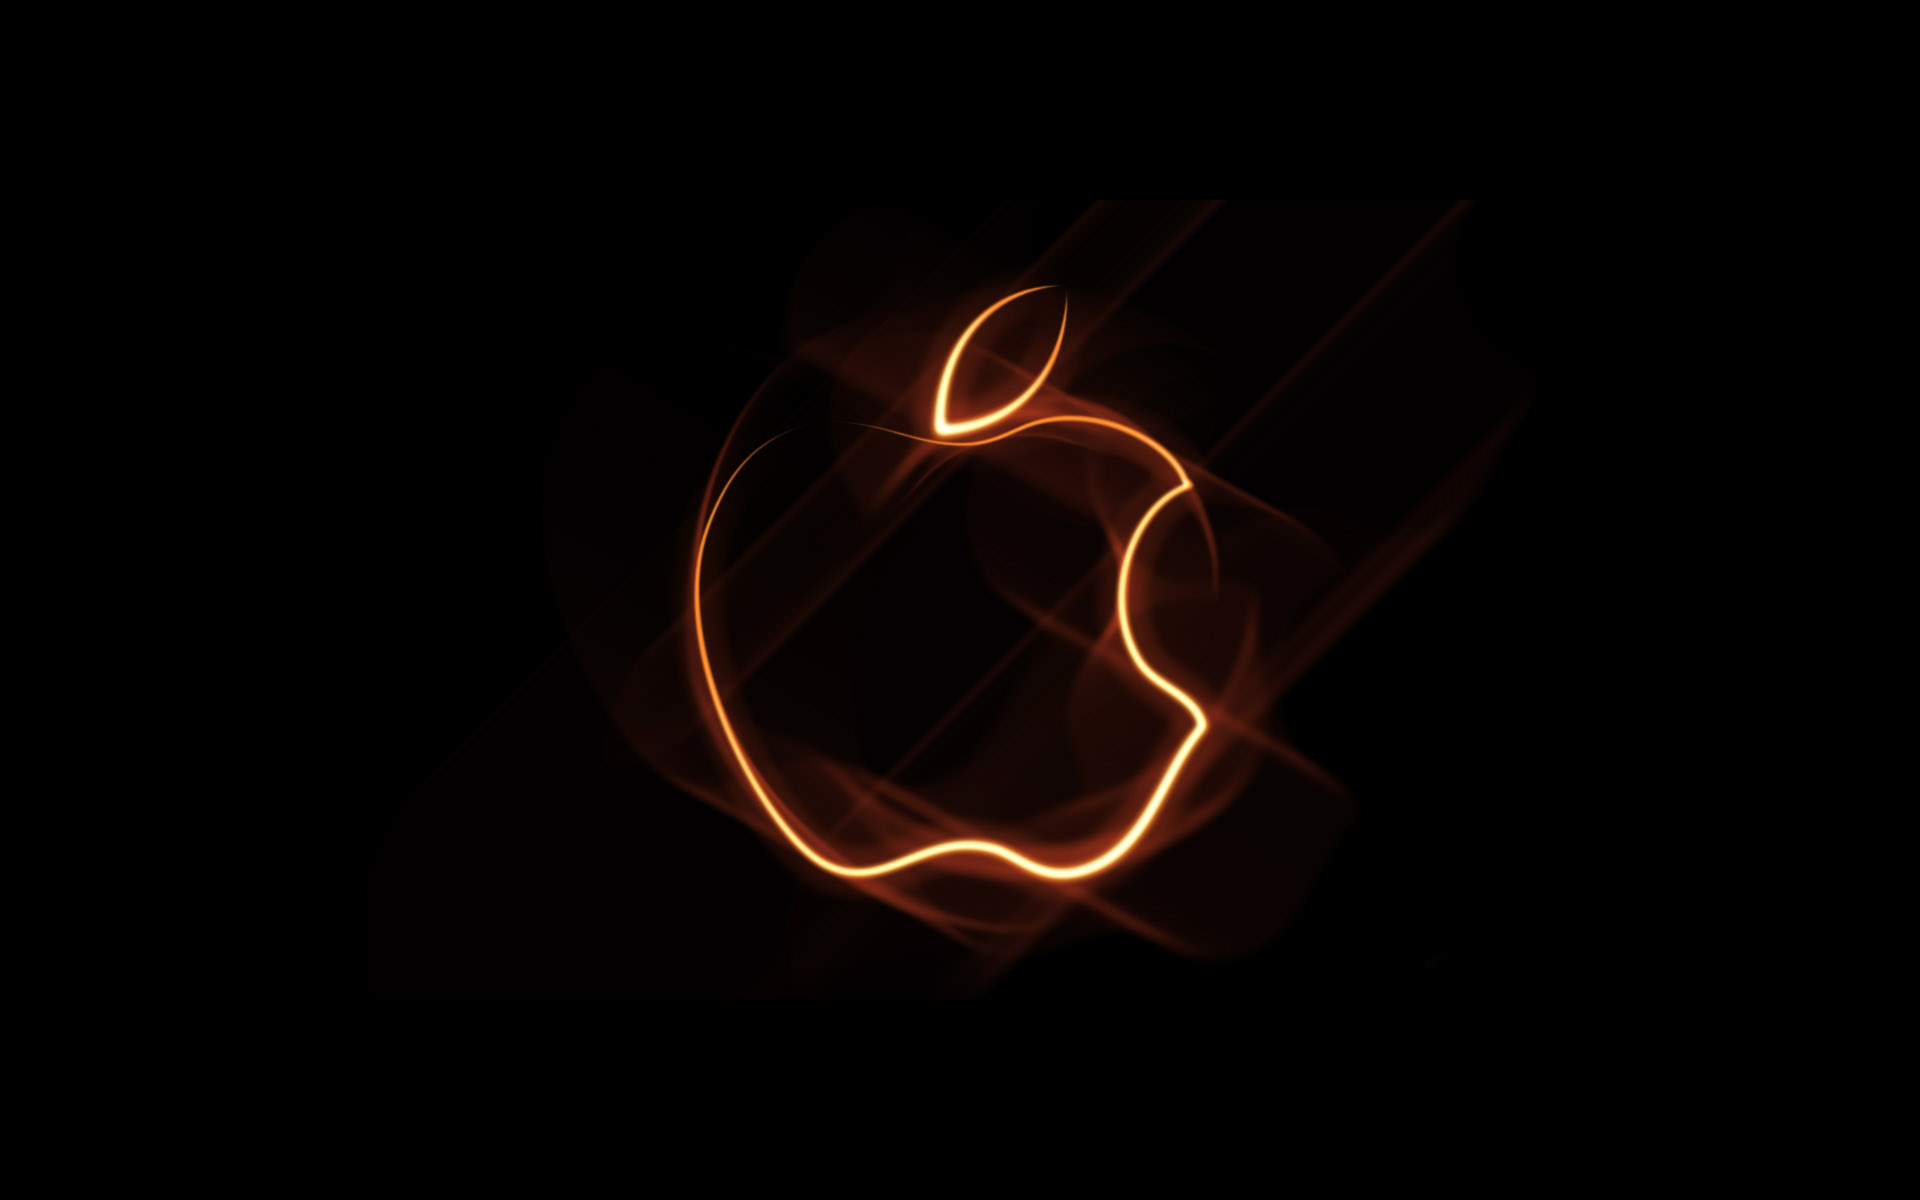 HD-Apple-Wallpaper